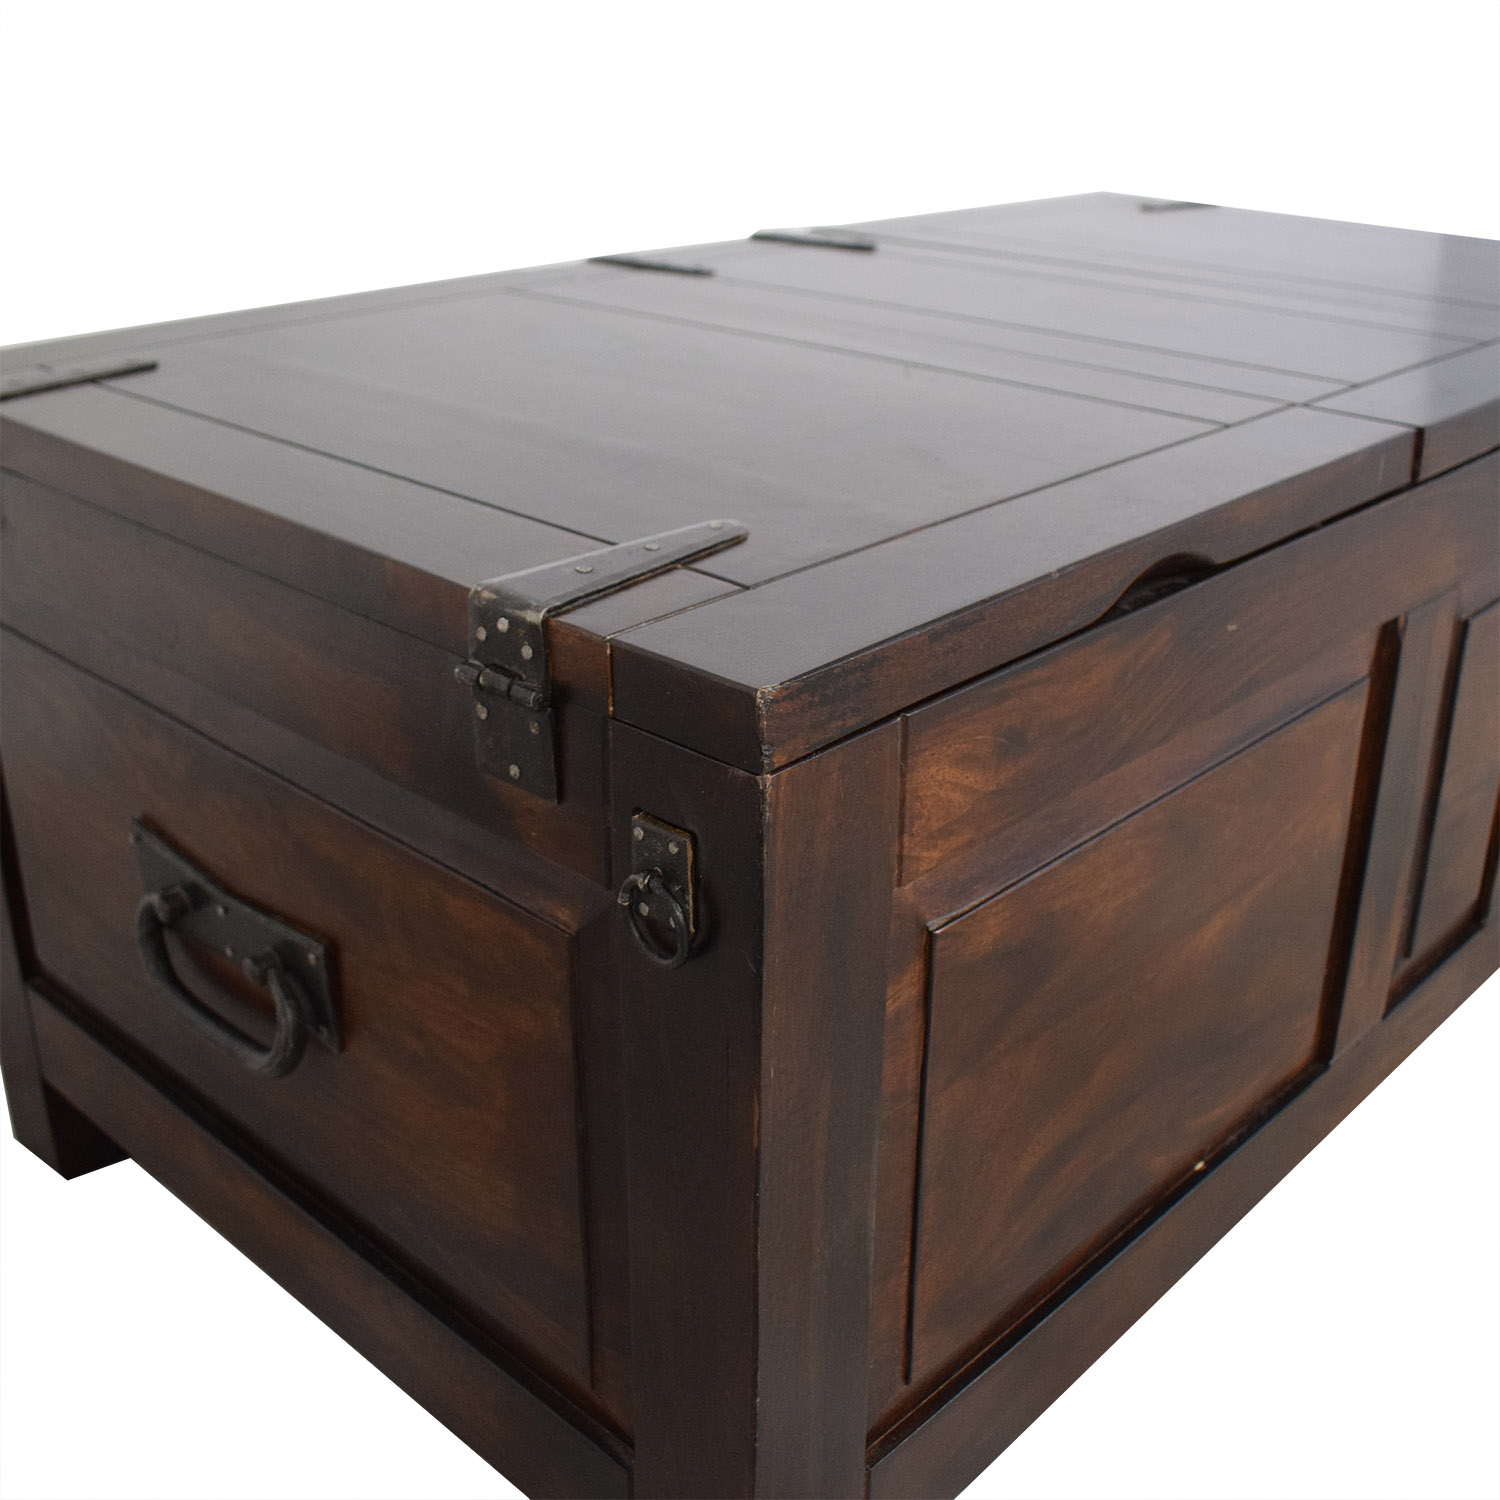 Crate & Barrel Crate and Barrel Trunk Table second hand